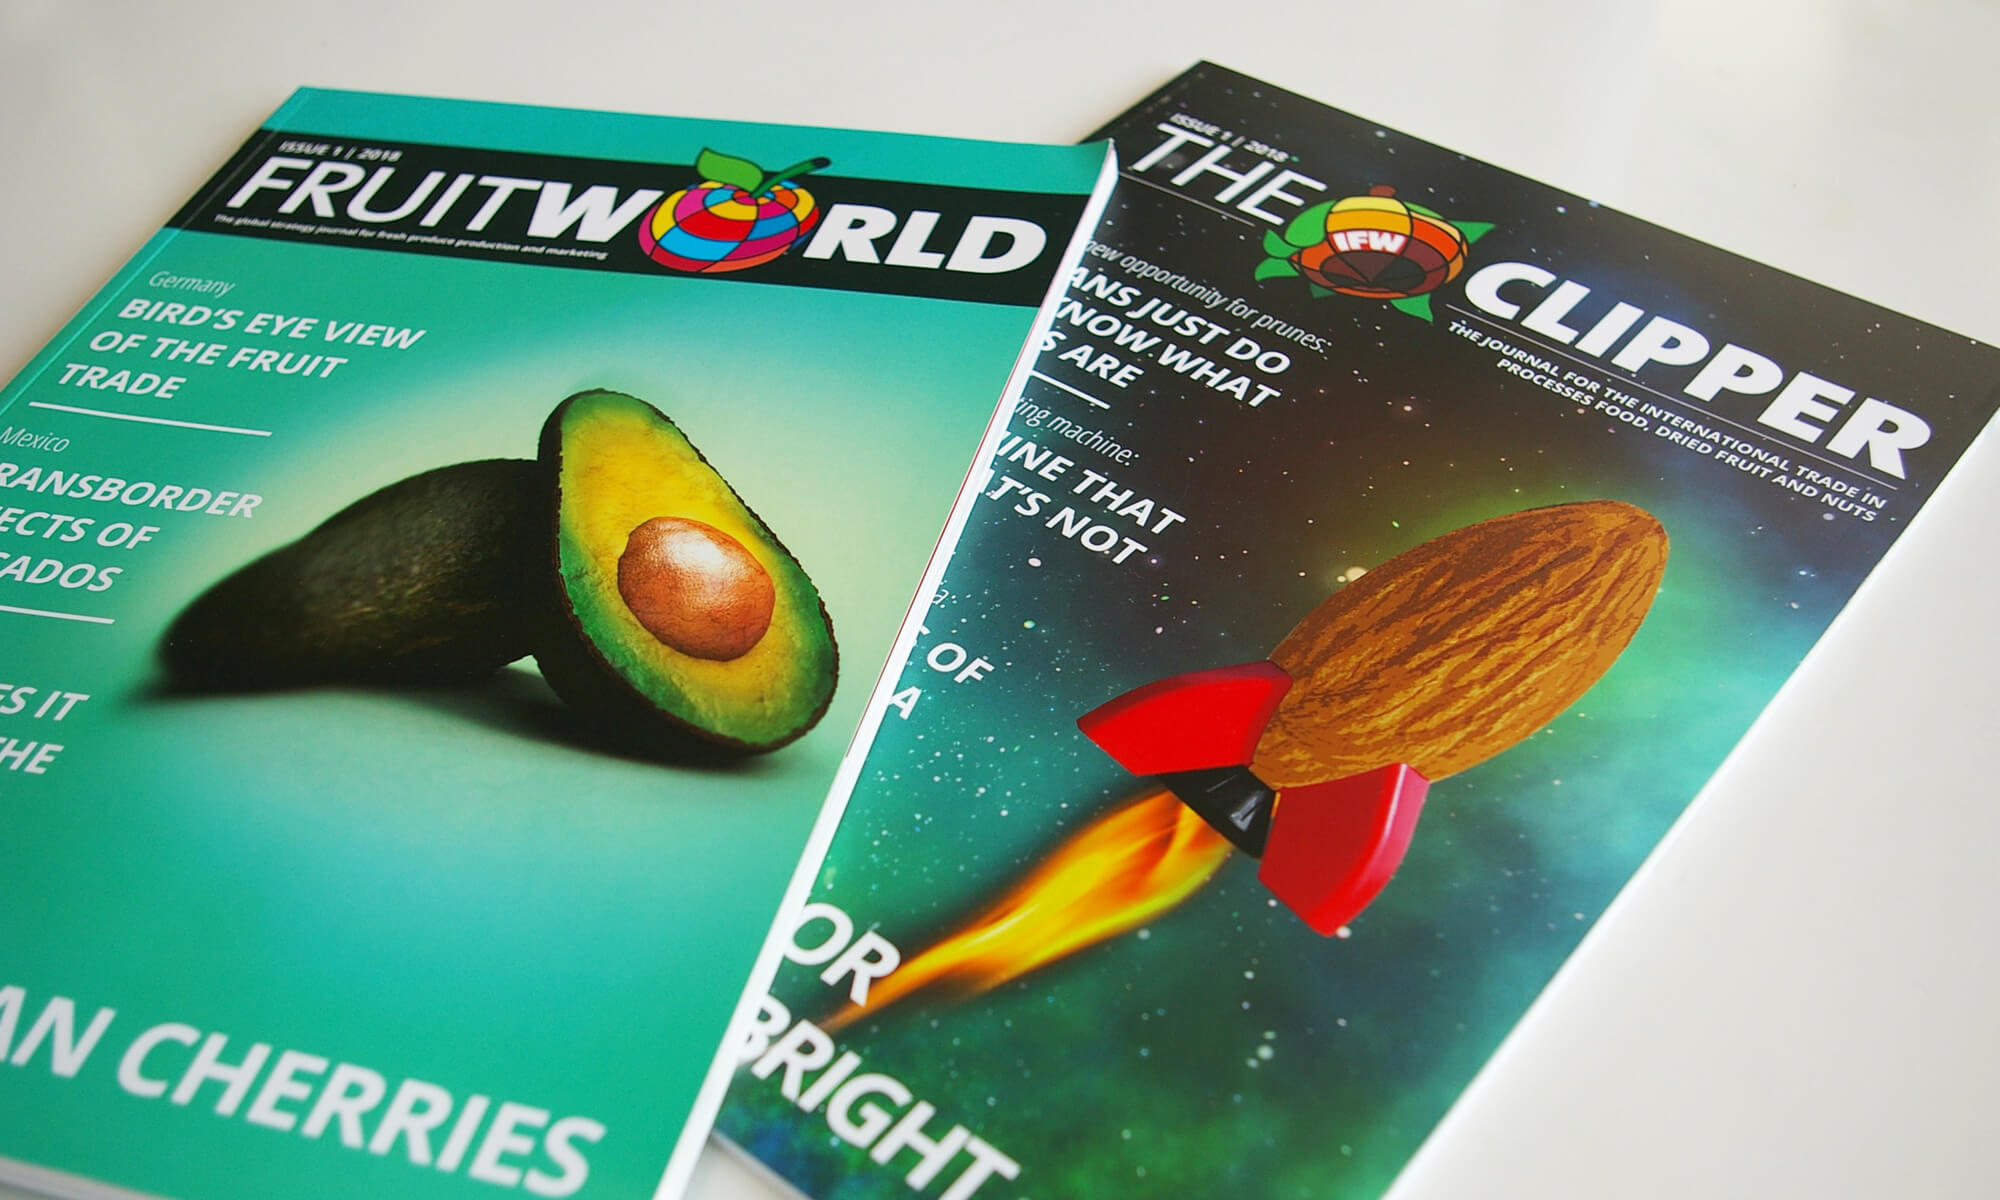 The Fruitworld 1-2018 & The Clipper 1-2018